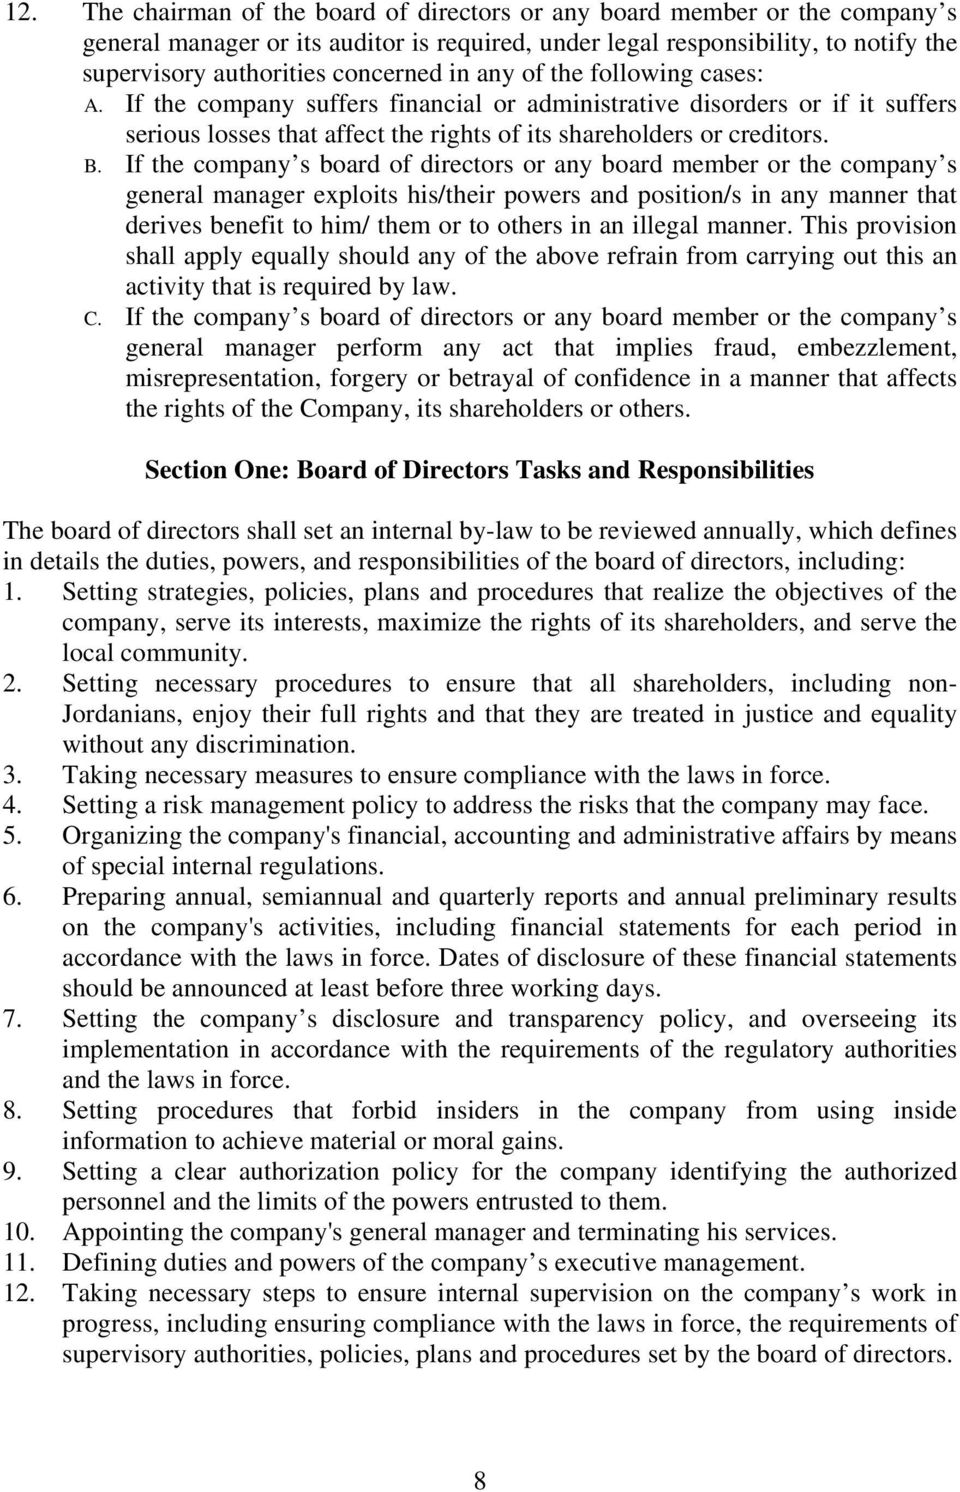 If the company s board of directors or any board member or the company s general manager exploits his/their powers and position/s in any manner that derives benefit to him/ them or to others in an